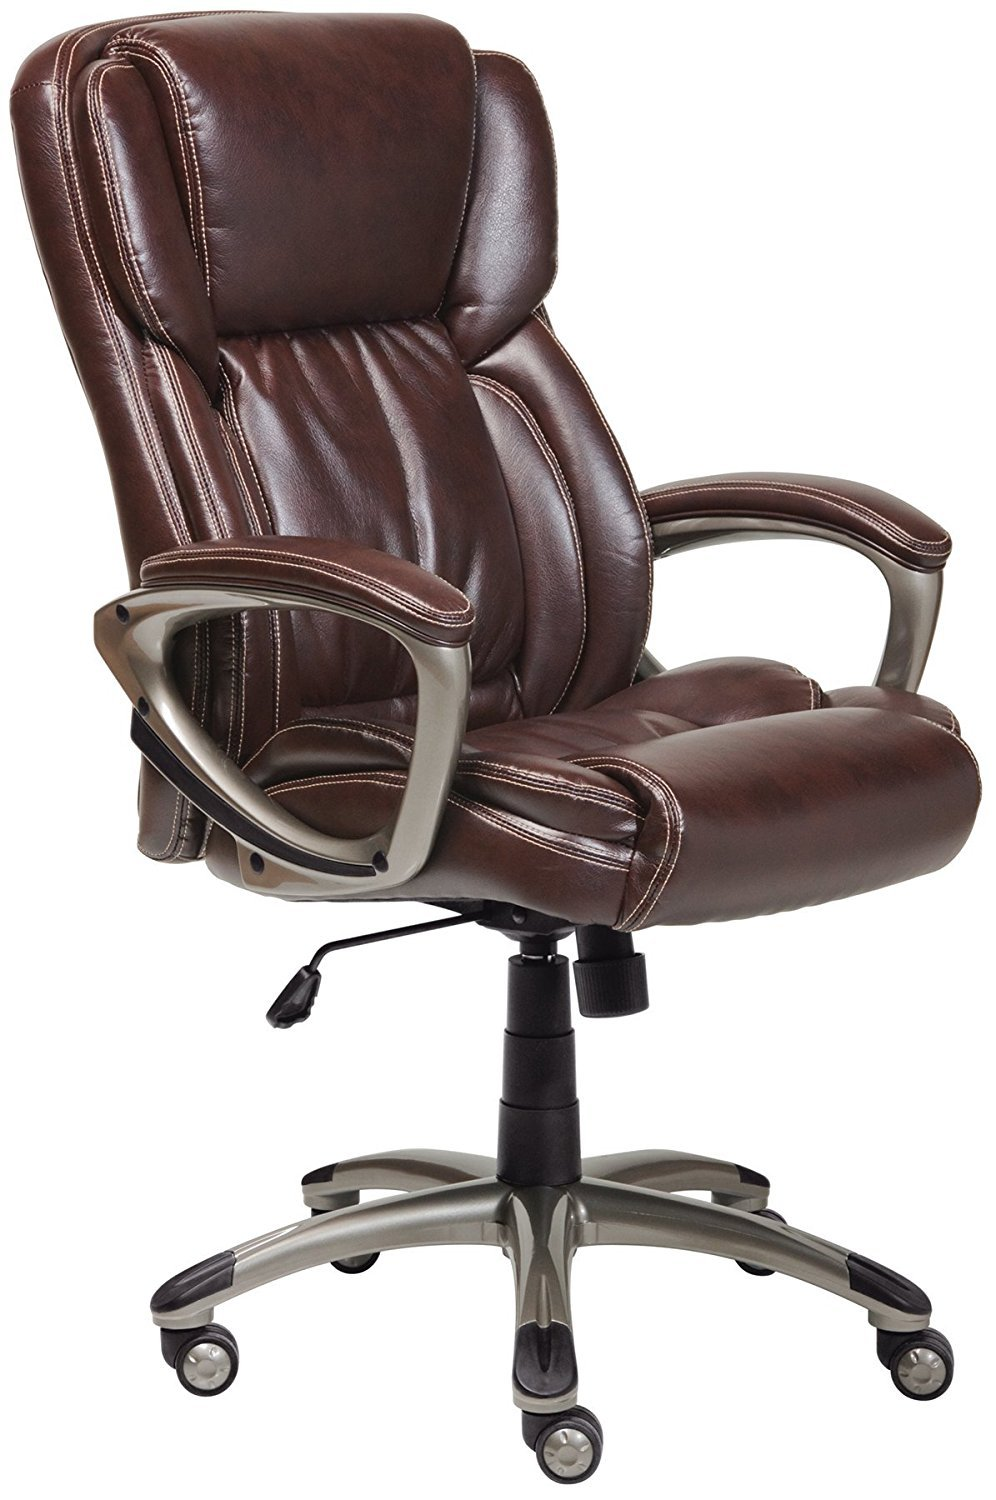 Serta Bonded Leather Executive Chair Home Furniture Design